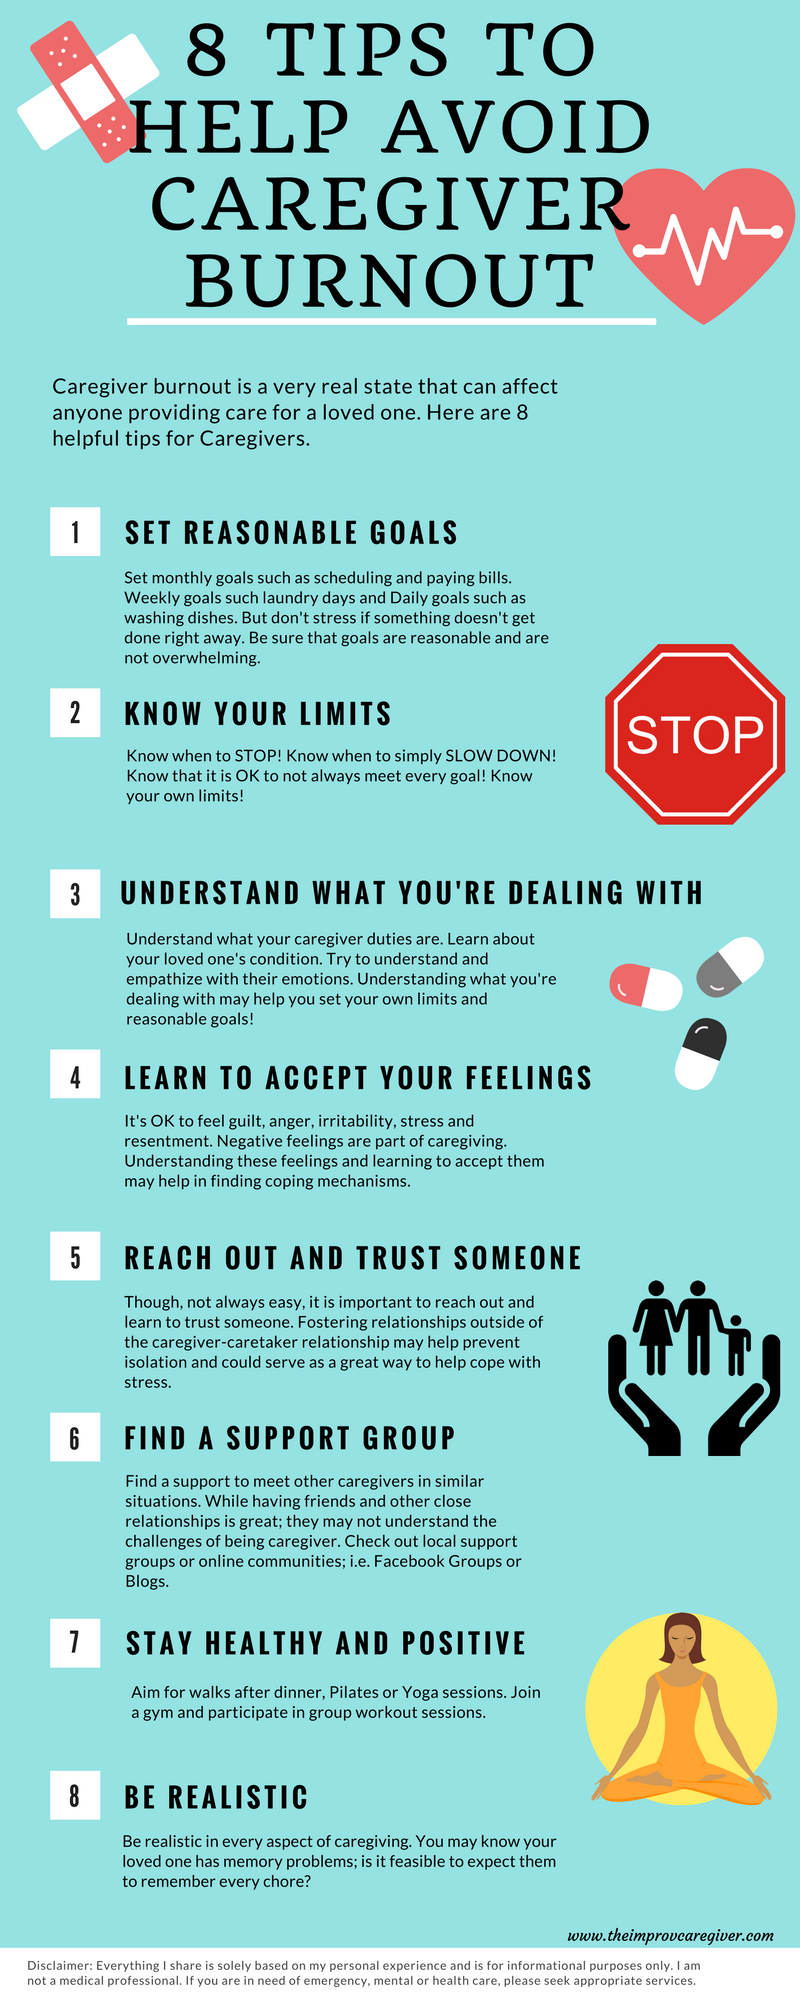 8 Tips To Avoid Caregiver Burnout